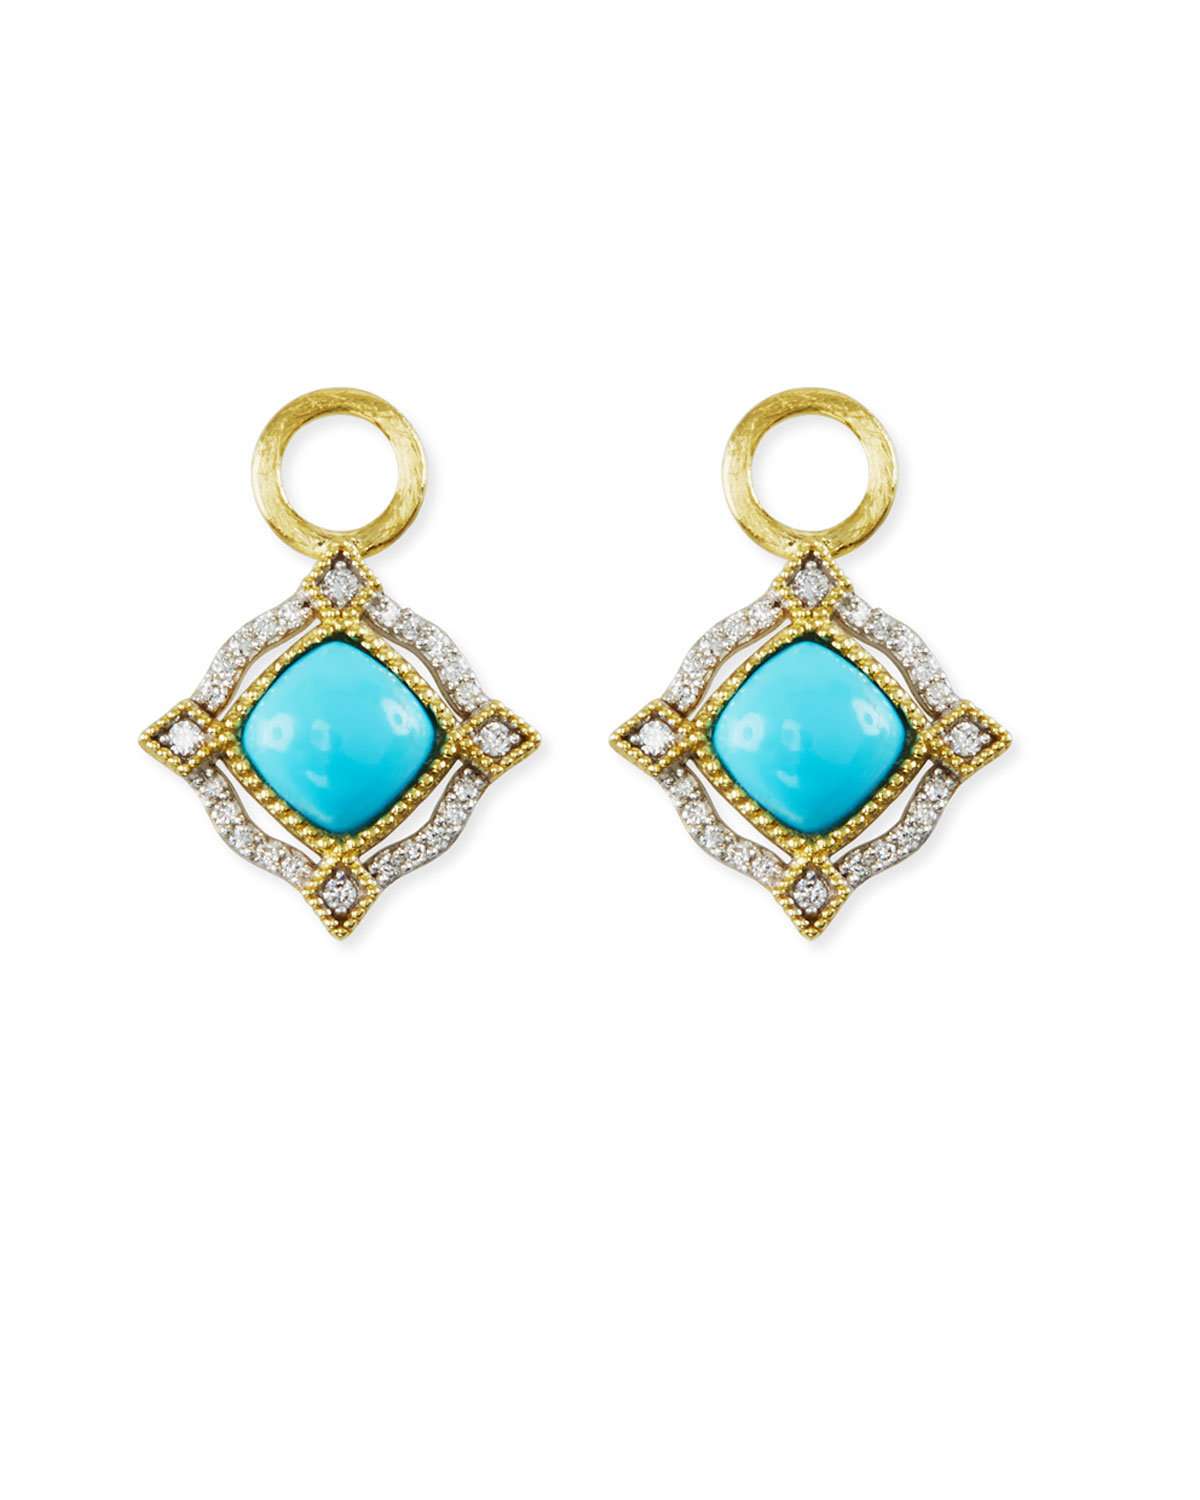 Jude Frances Lisse 18K Delicate Cushion Turquoise Earring Charms with Diamonds QlY8eooXbF